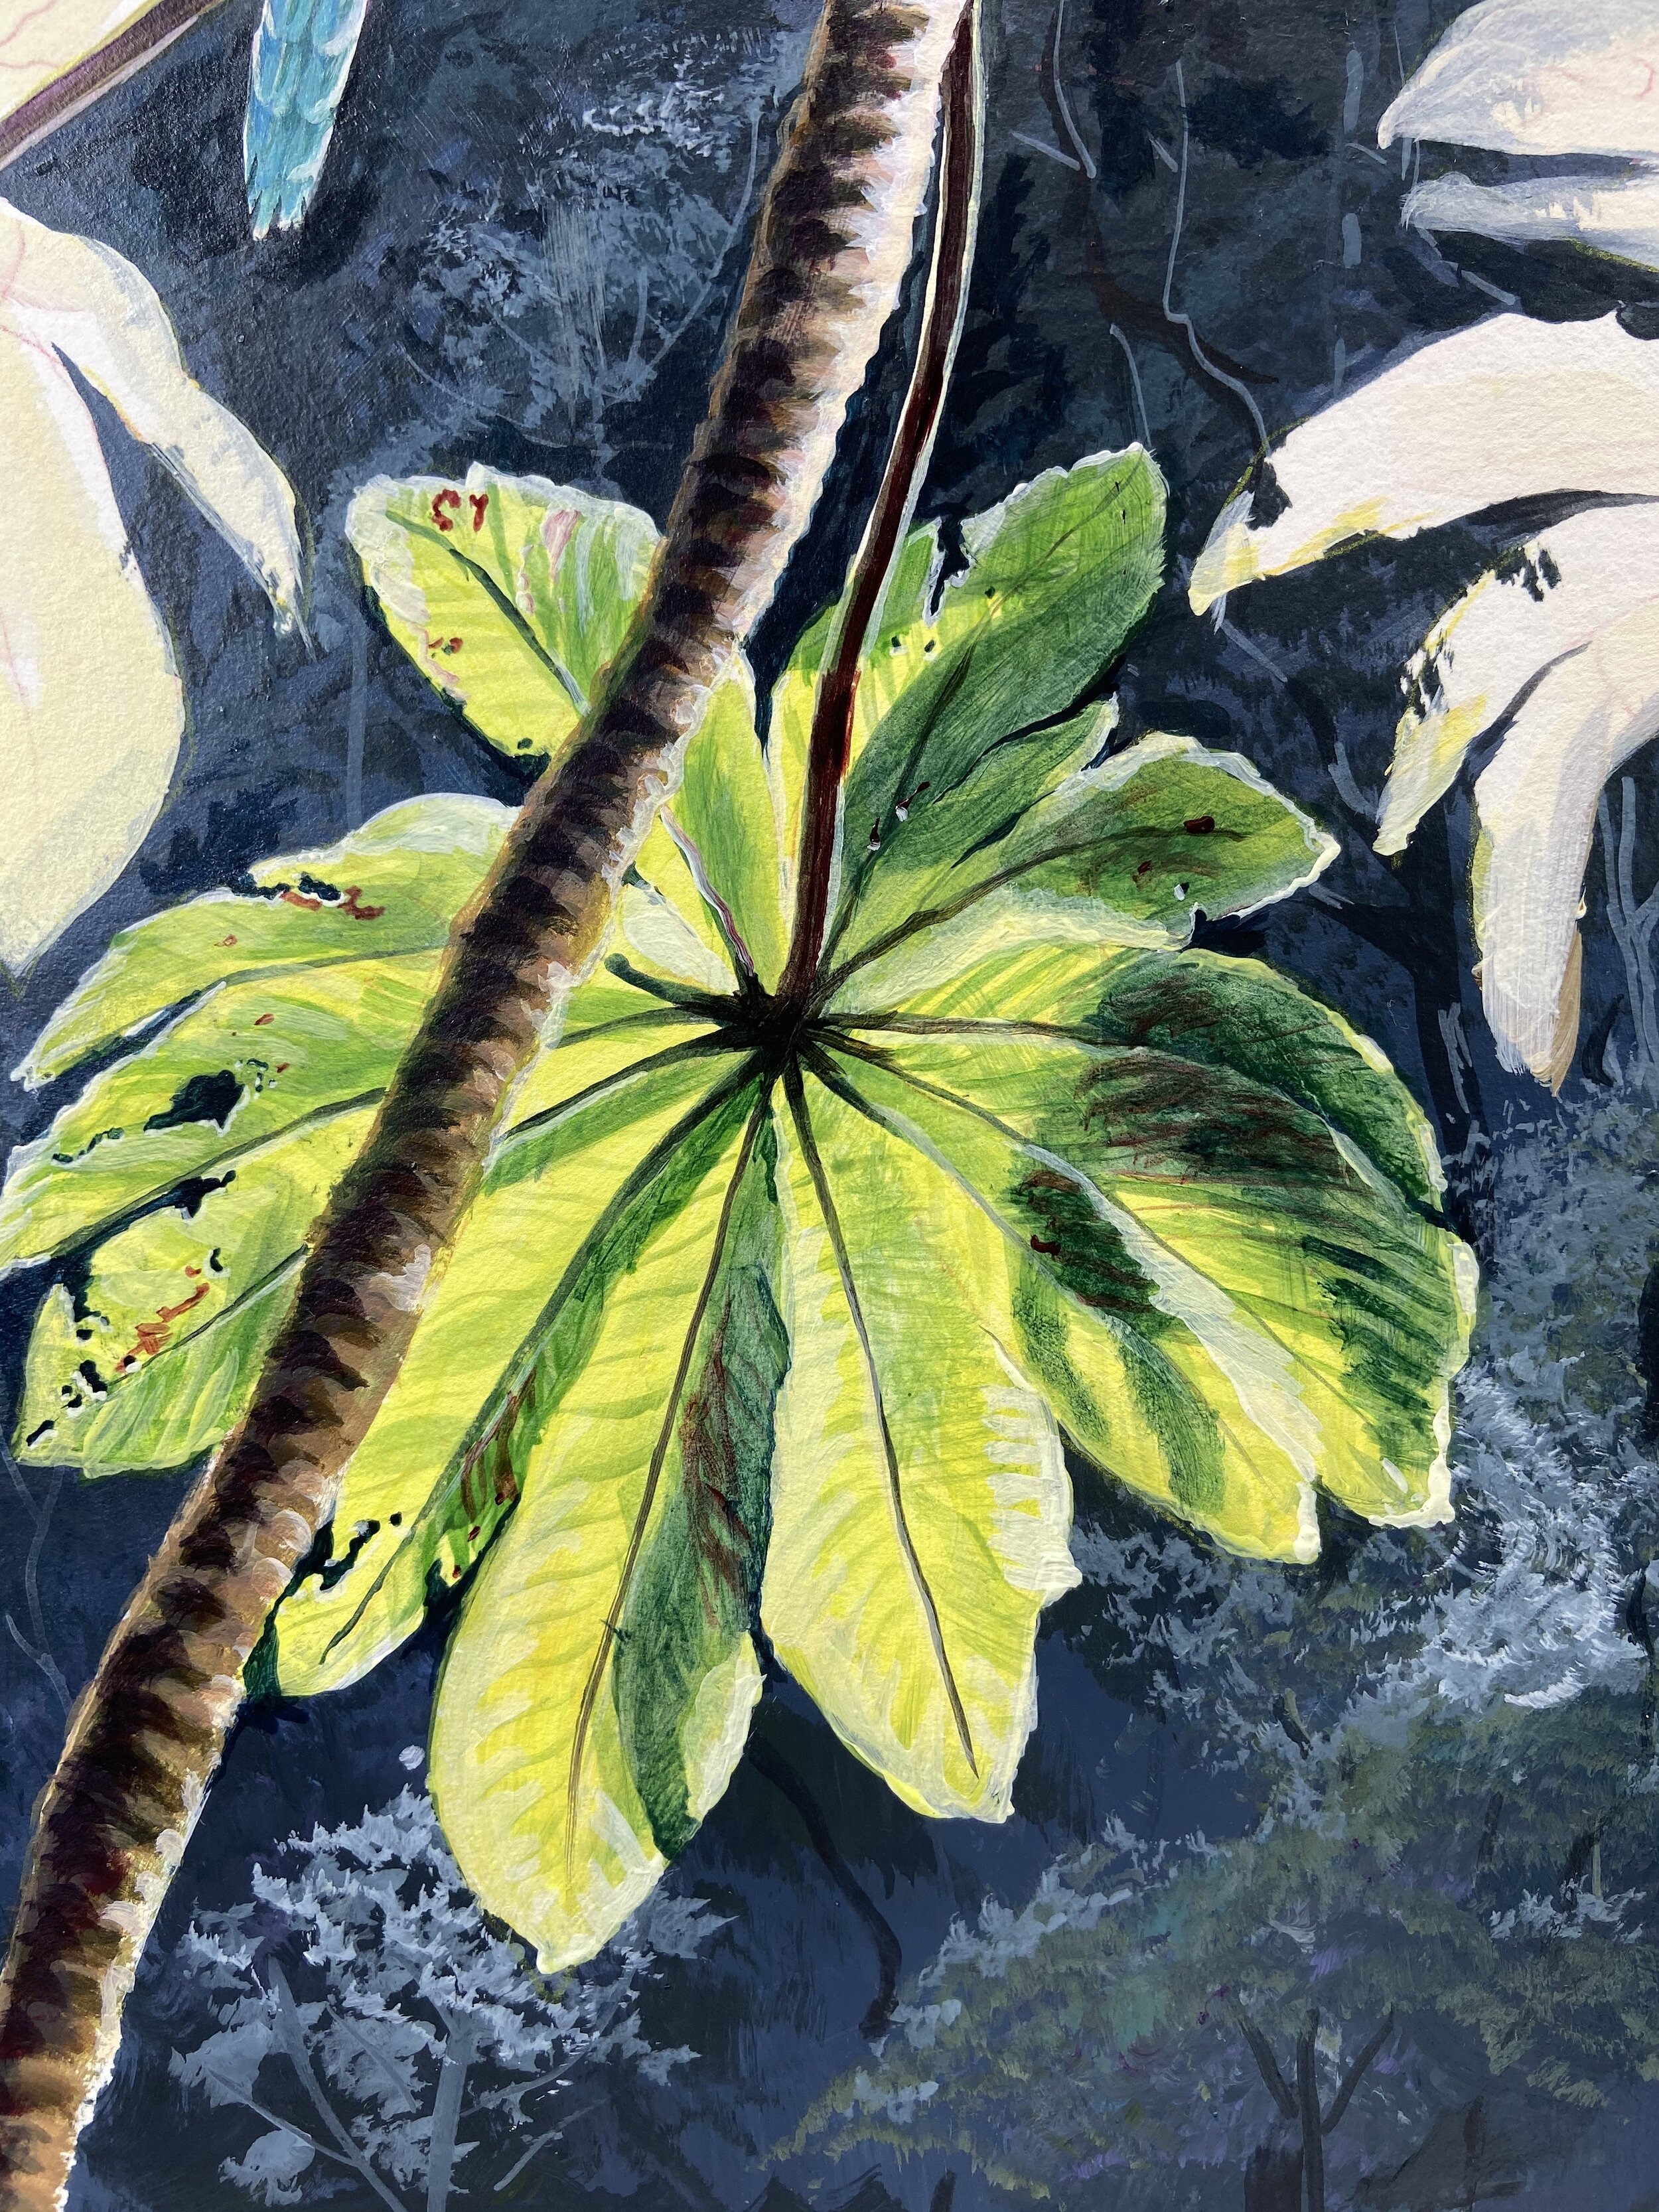 Using transparent layers of acrylic to achieve luminous finish for the large cecropia leaves. This is a theme that I've come back to, several times. It's a scene that I lived at Henri Pittier National Park in Venezuela. A lot of reminiscing a longing goes into this painting….